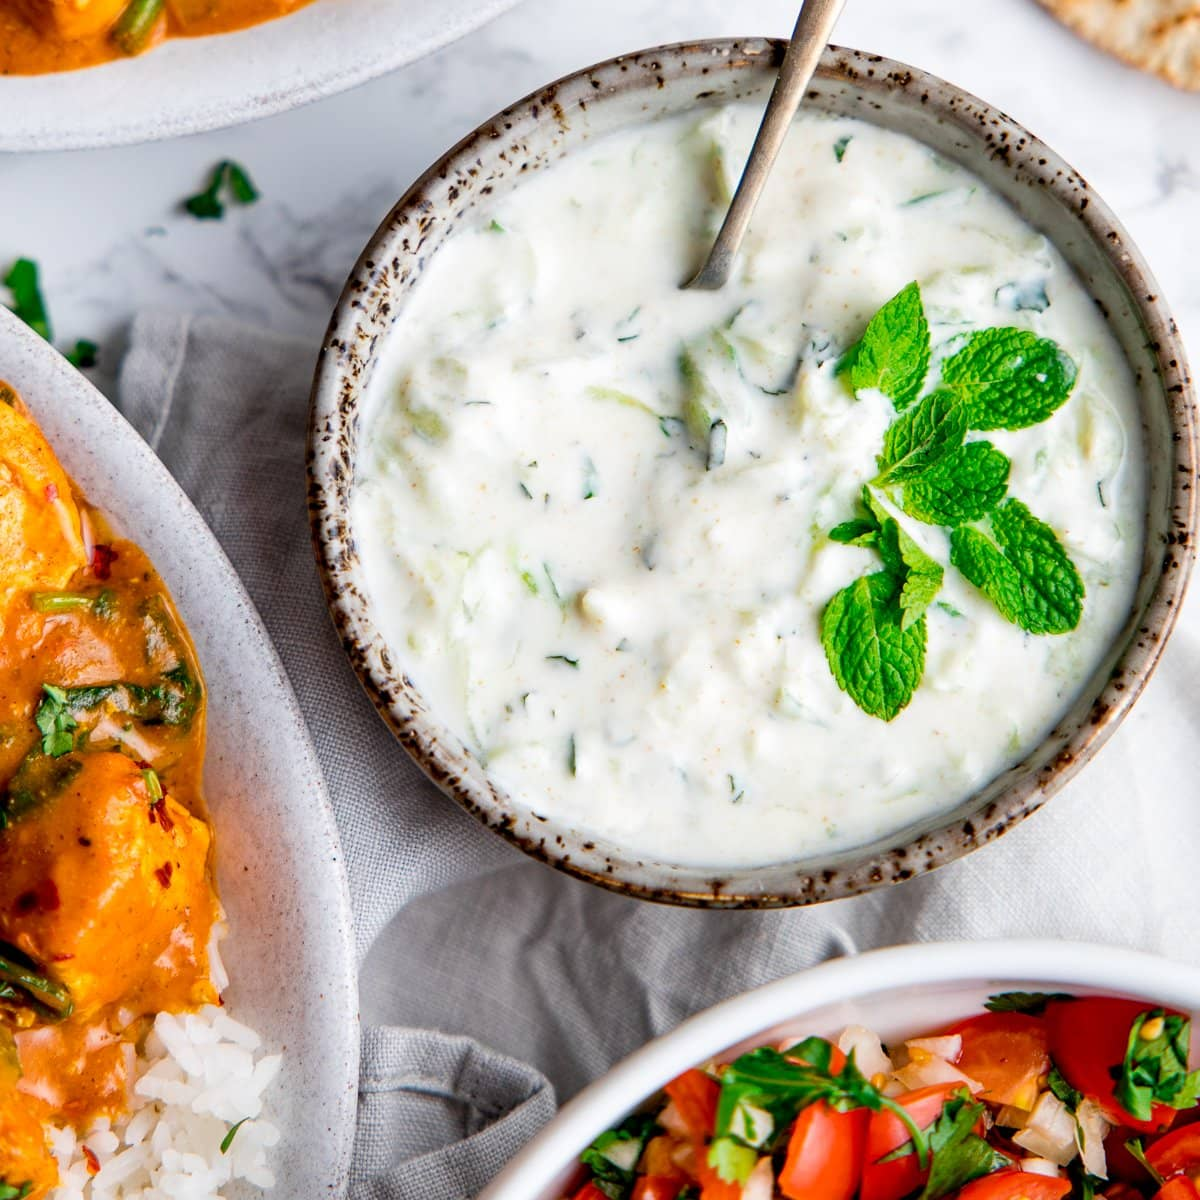 Raita in a grey bowl with mint leaves on top and bowls of food around the raita